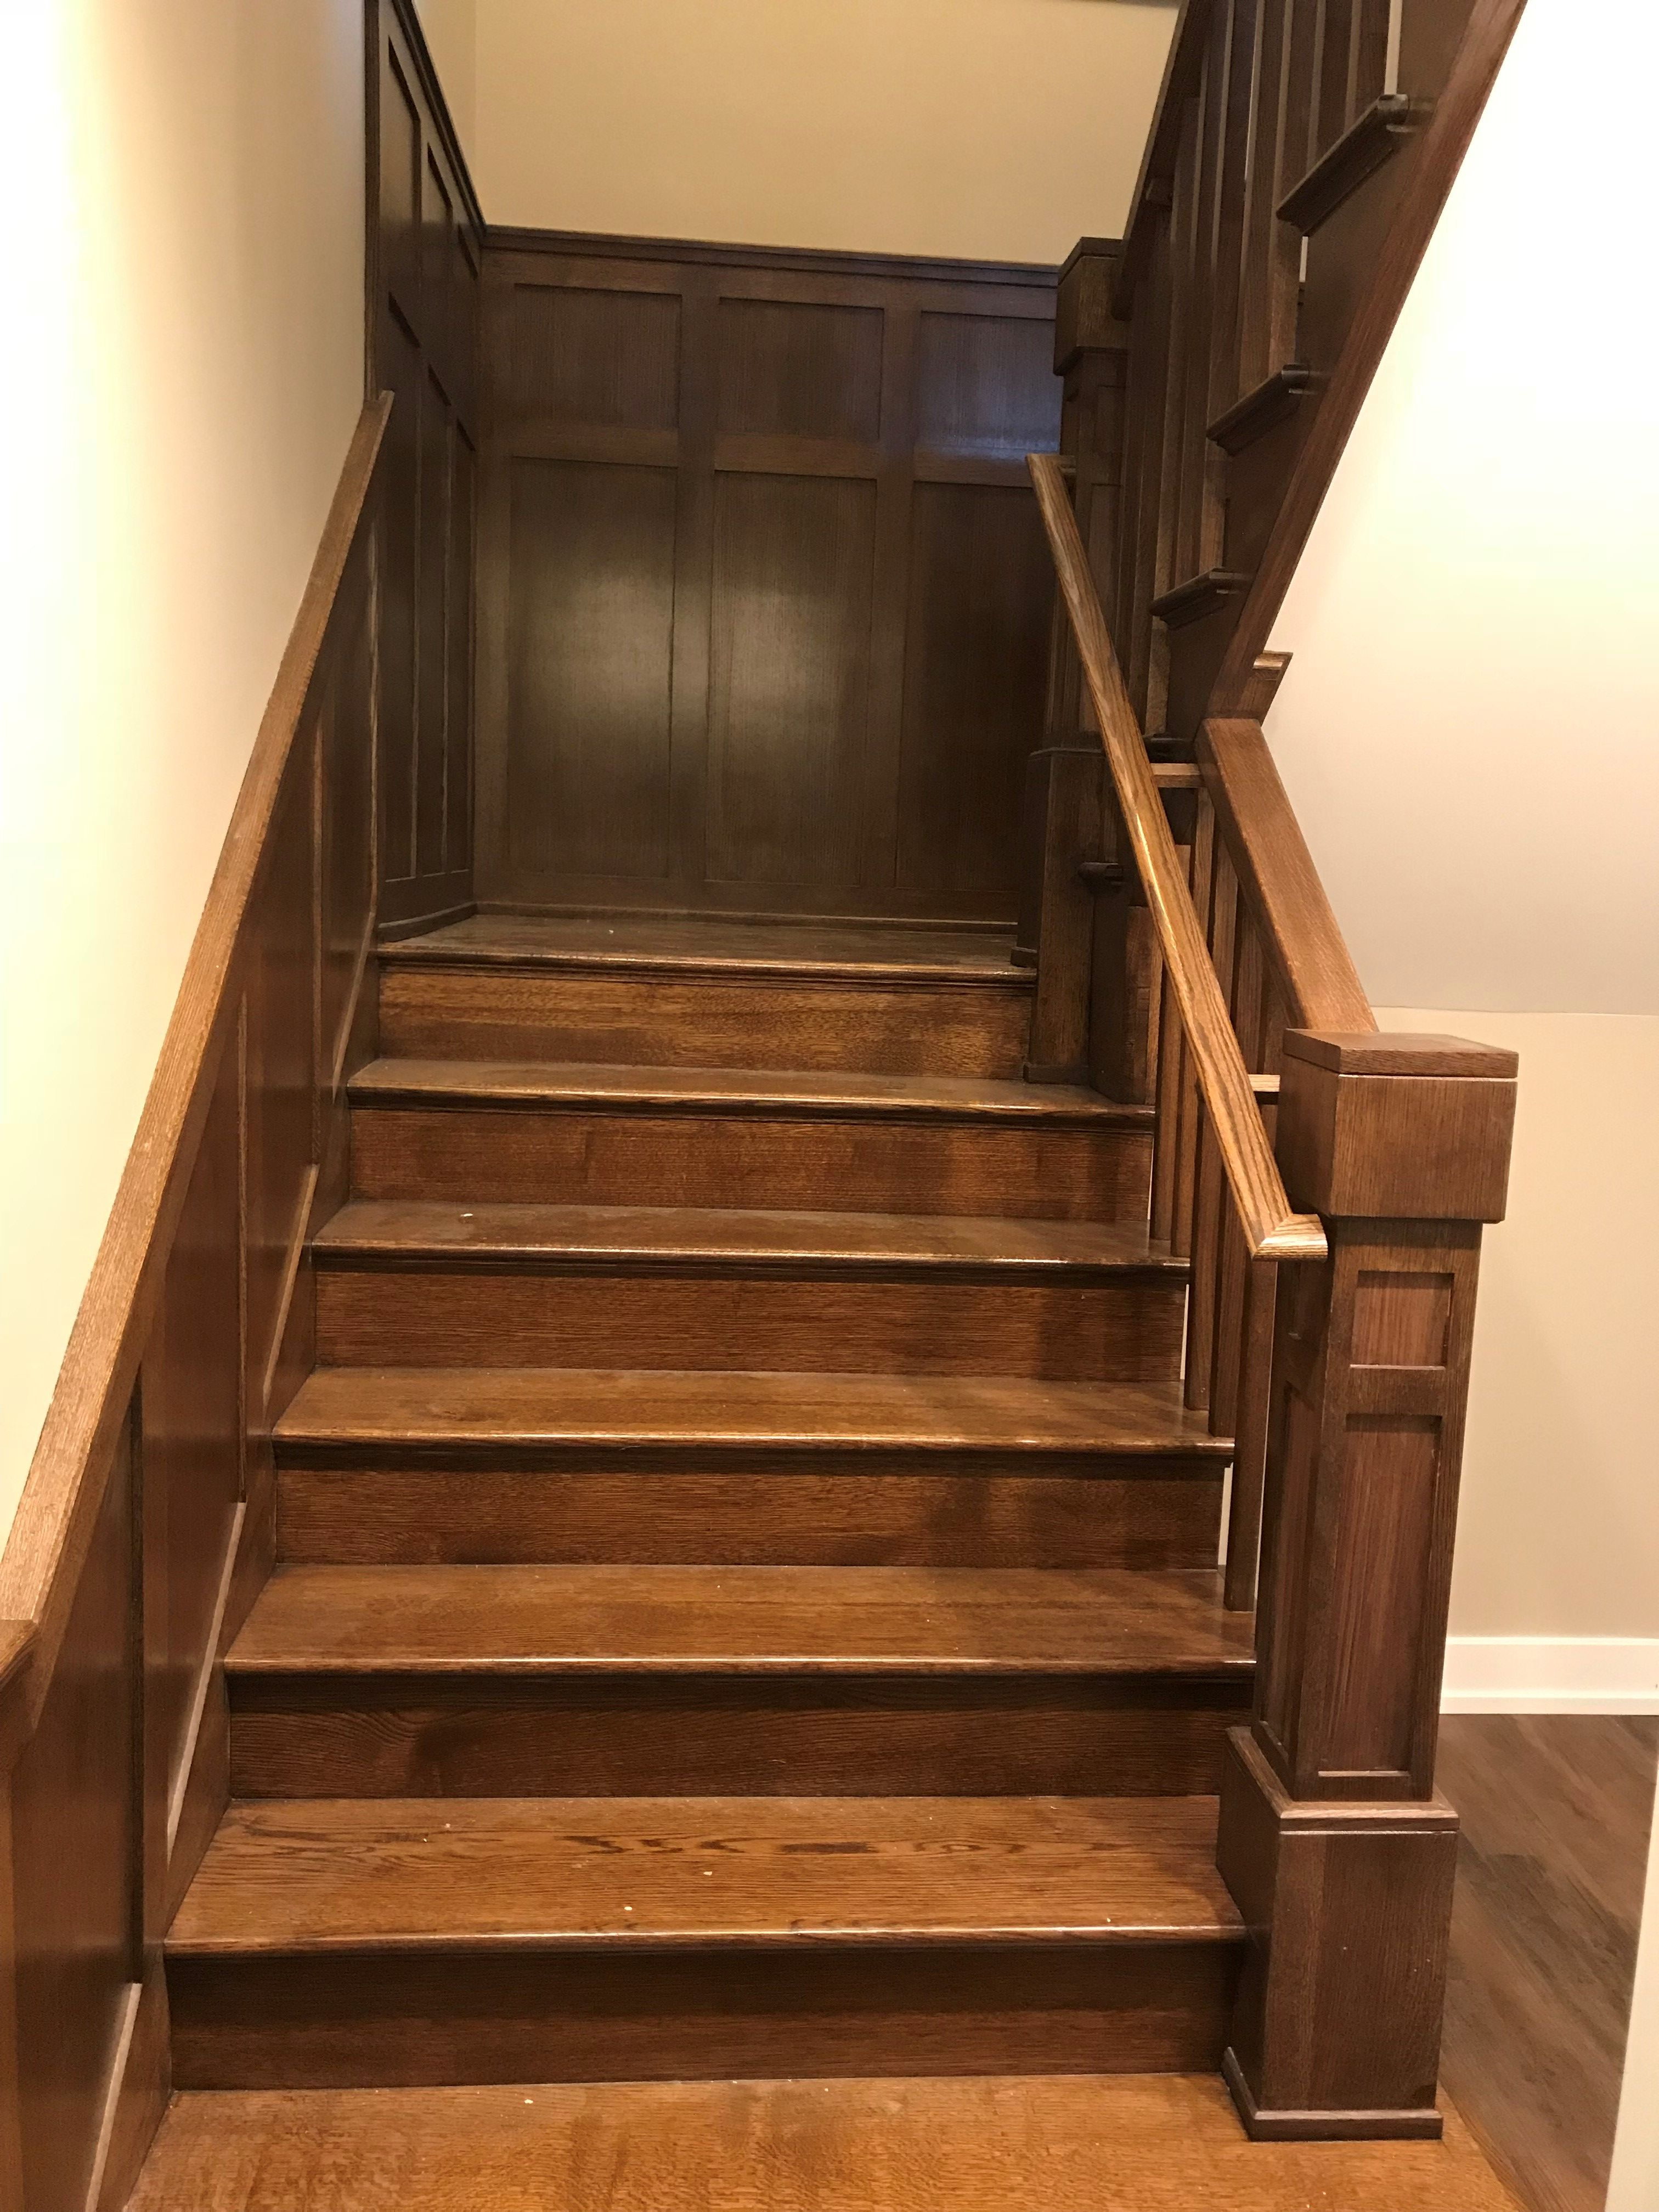 Craftsman Style Staircase With Wood Balusters And Wainscot Panels Basement View Wood Balusters Wainscoting Panels Wainscoting